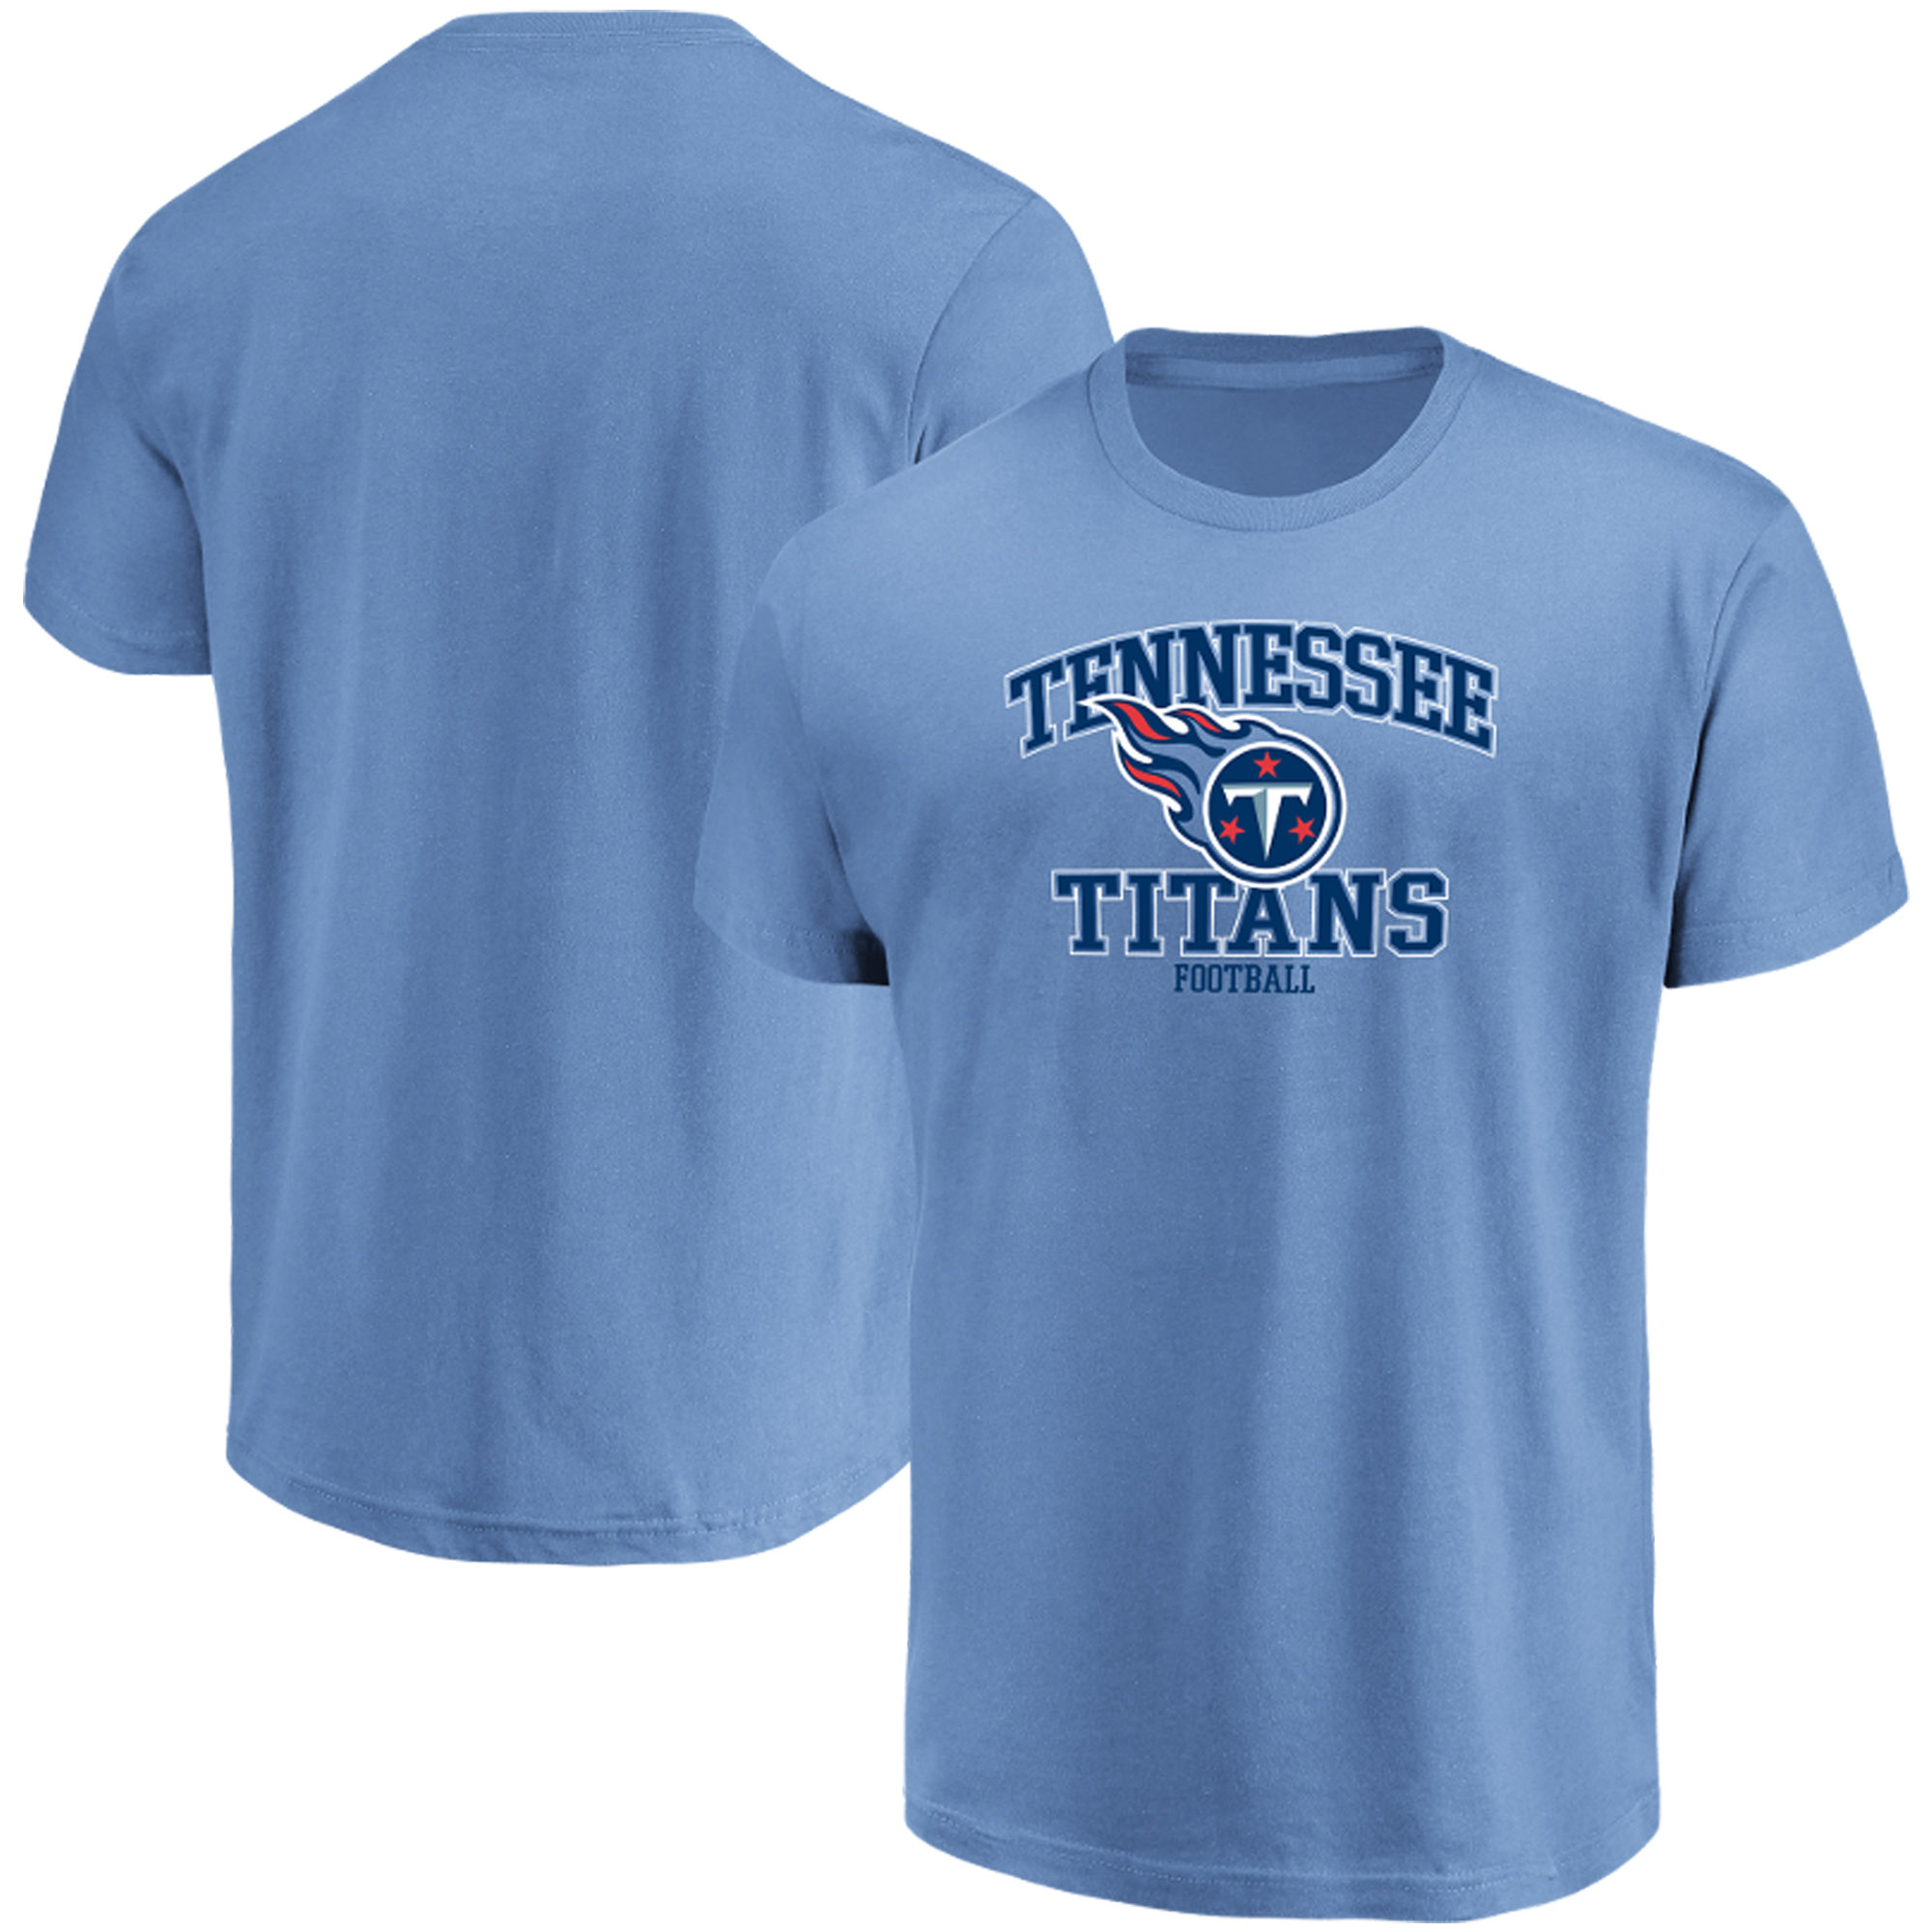 Men's Majestic Light Blue Tennessee Titans Greatness T-Shirt